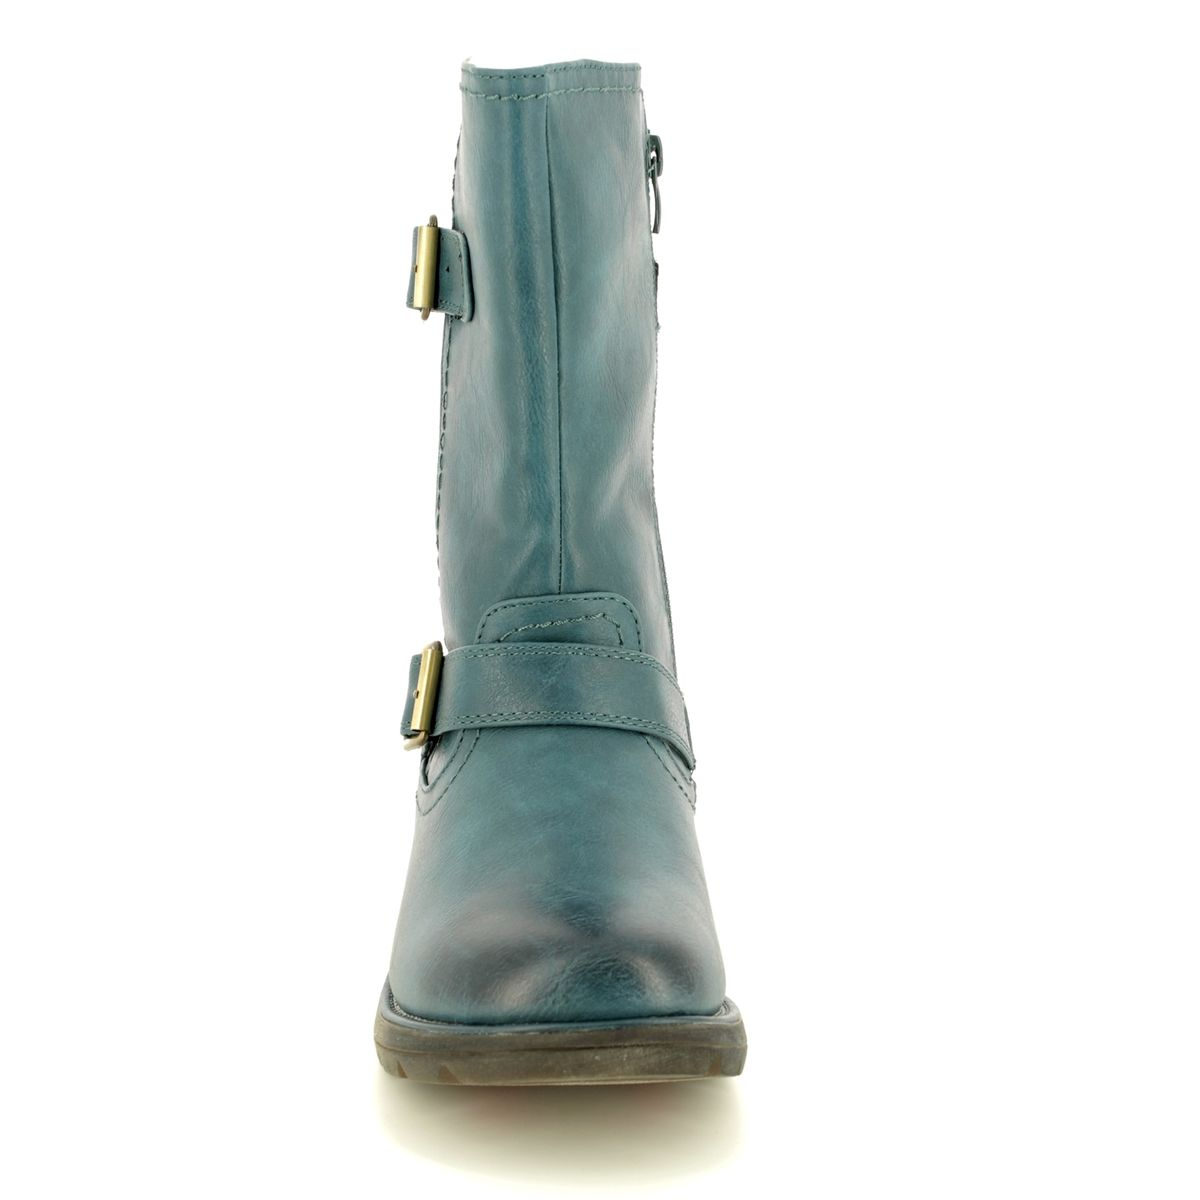 d7ff91017d29d Heavenly Feet Ankle Boots - Teal blue - 8510/70 PACIFIC 2